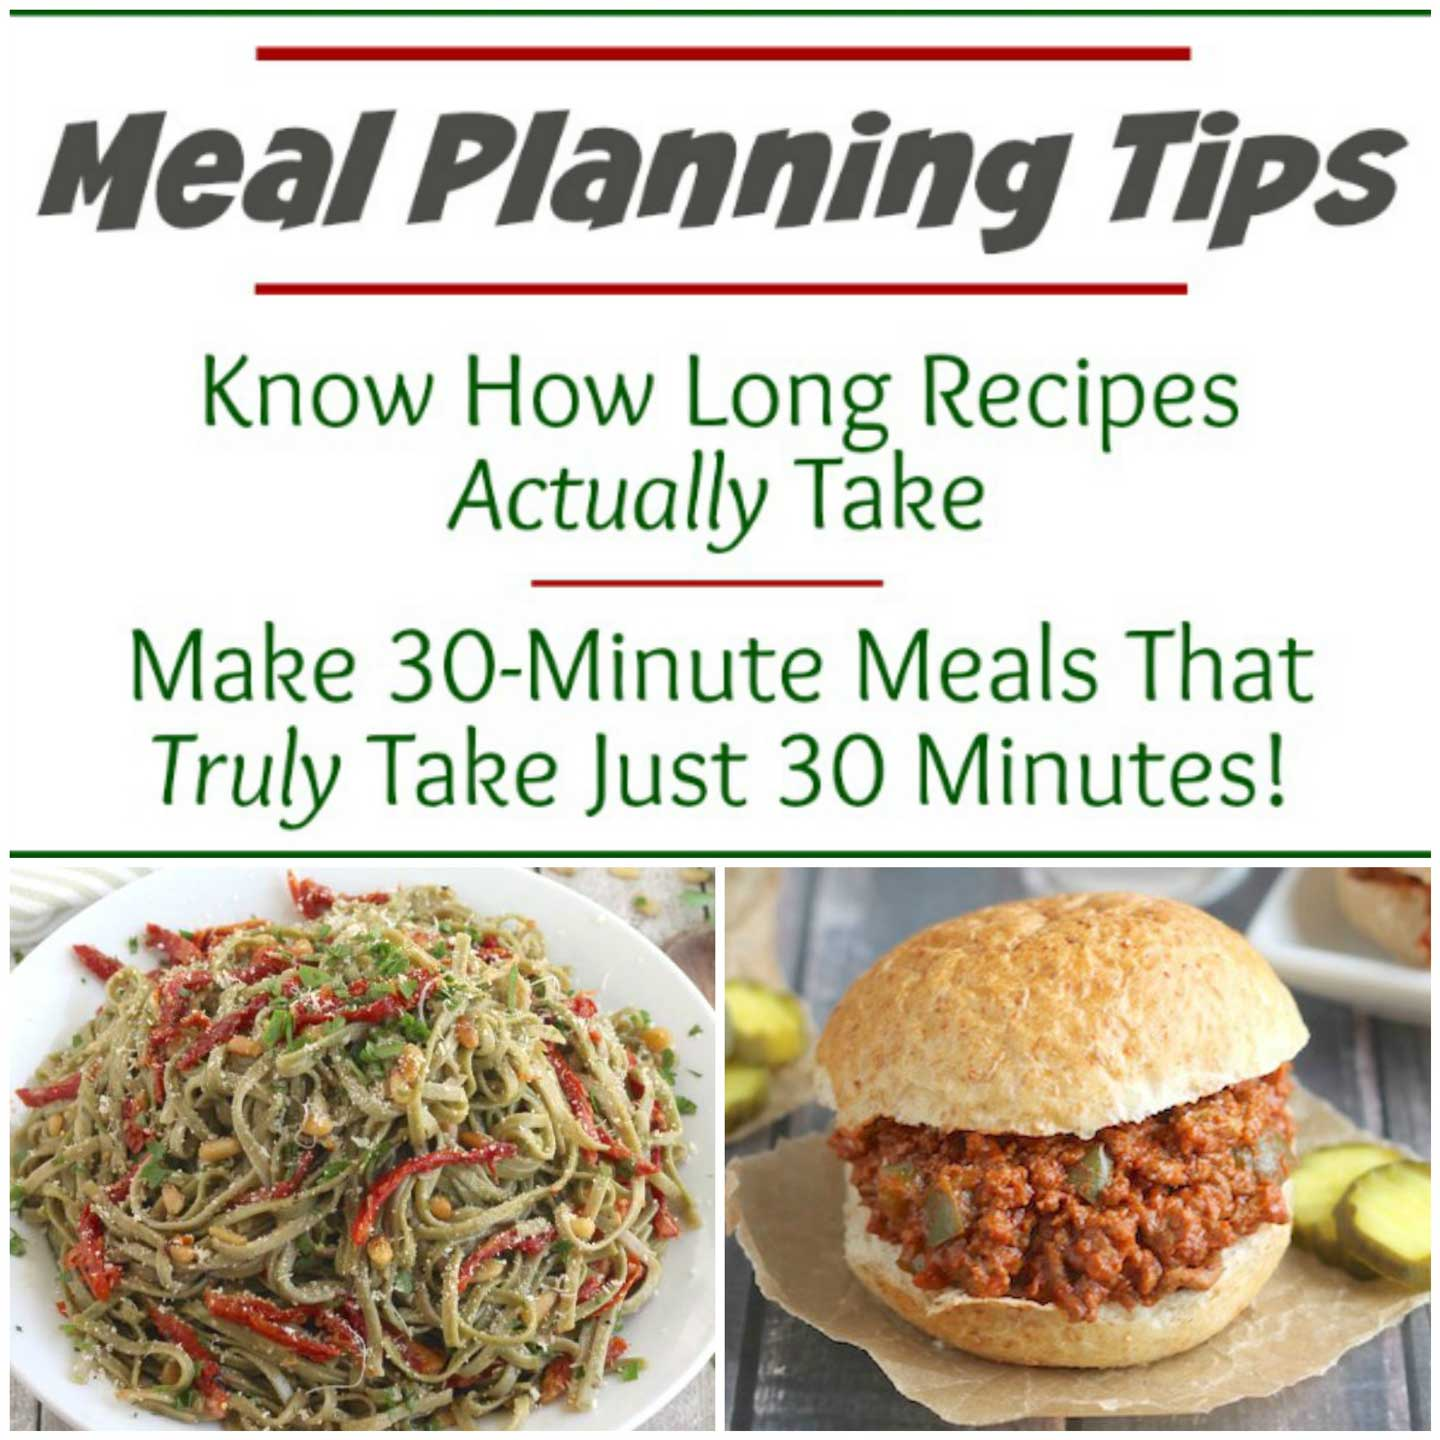 We've got Meal Plan Tips to help you plan and cook smarter! Learn why recipe prep times often don't seem accurate, why 30-minute meals so often don't take just 30 minutes, and what you can do to maximize your time in the kitchen!